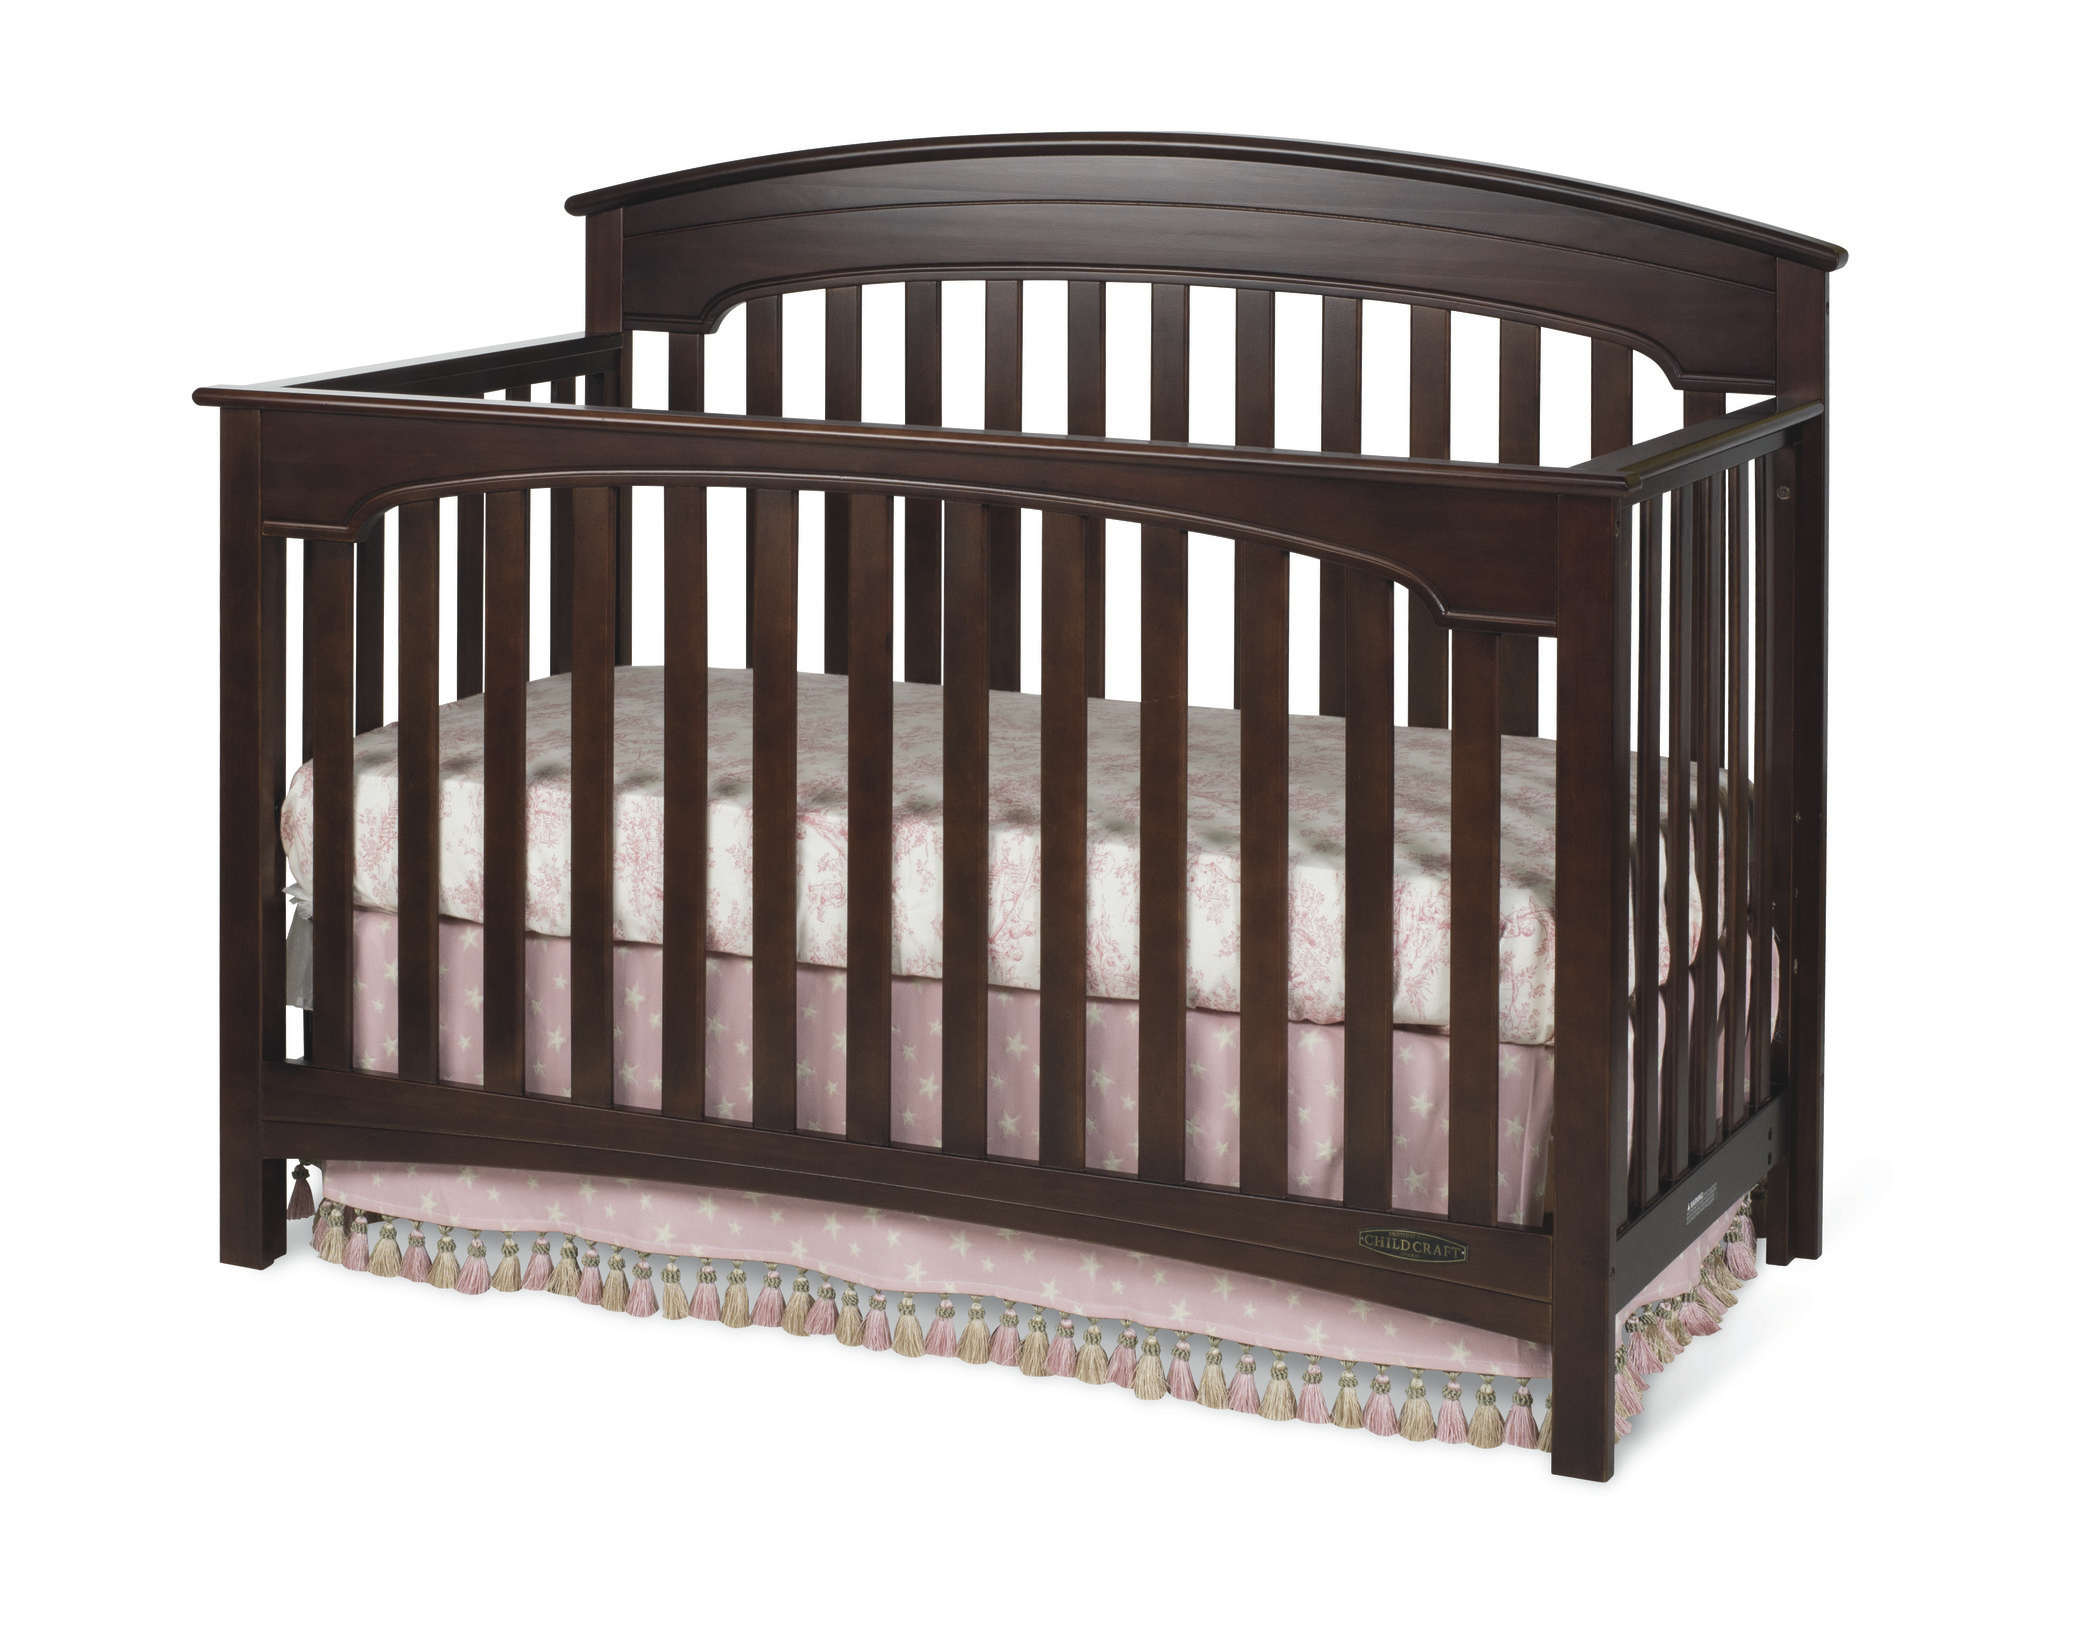 Child Craft Child Craft Stanford 4-in-1 Convertible Crib, Select Cherry